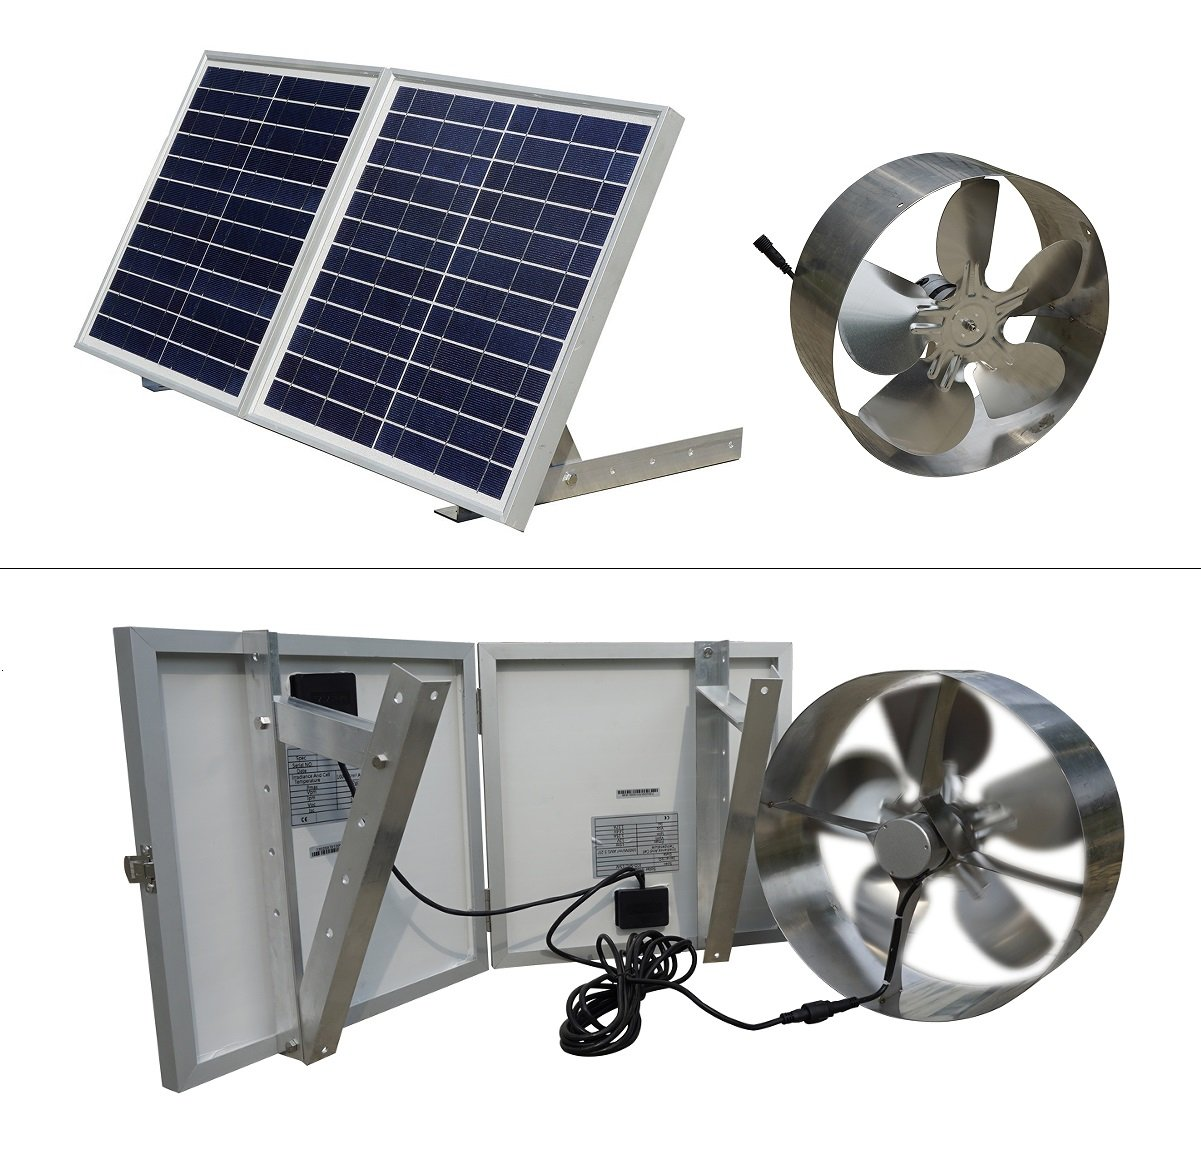 ECO-WORTHY 25W Solar Powered Attic Ventilator Gable Roof Vent Fan with 30W Foldable Solar Panel - Solar Fans for Home Attic, Greenhouse, RV or Outdoor, Ready-to-Use Solar Vent Fan, Solar Roof Vent by ECO-WORTHY